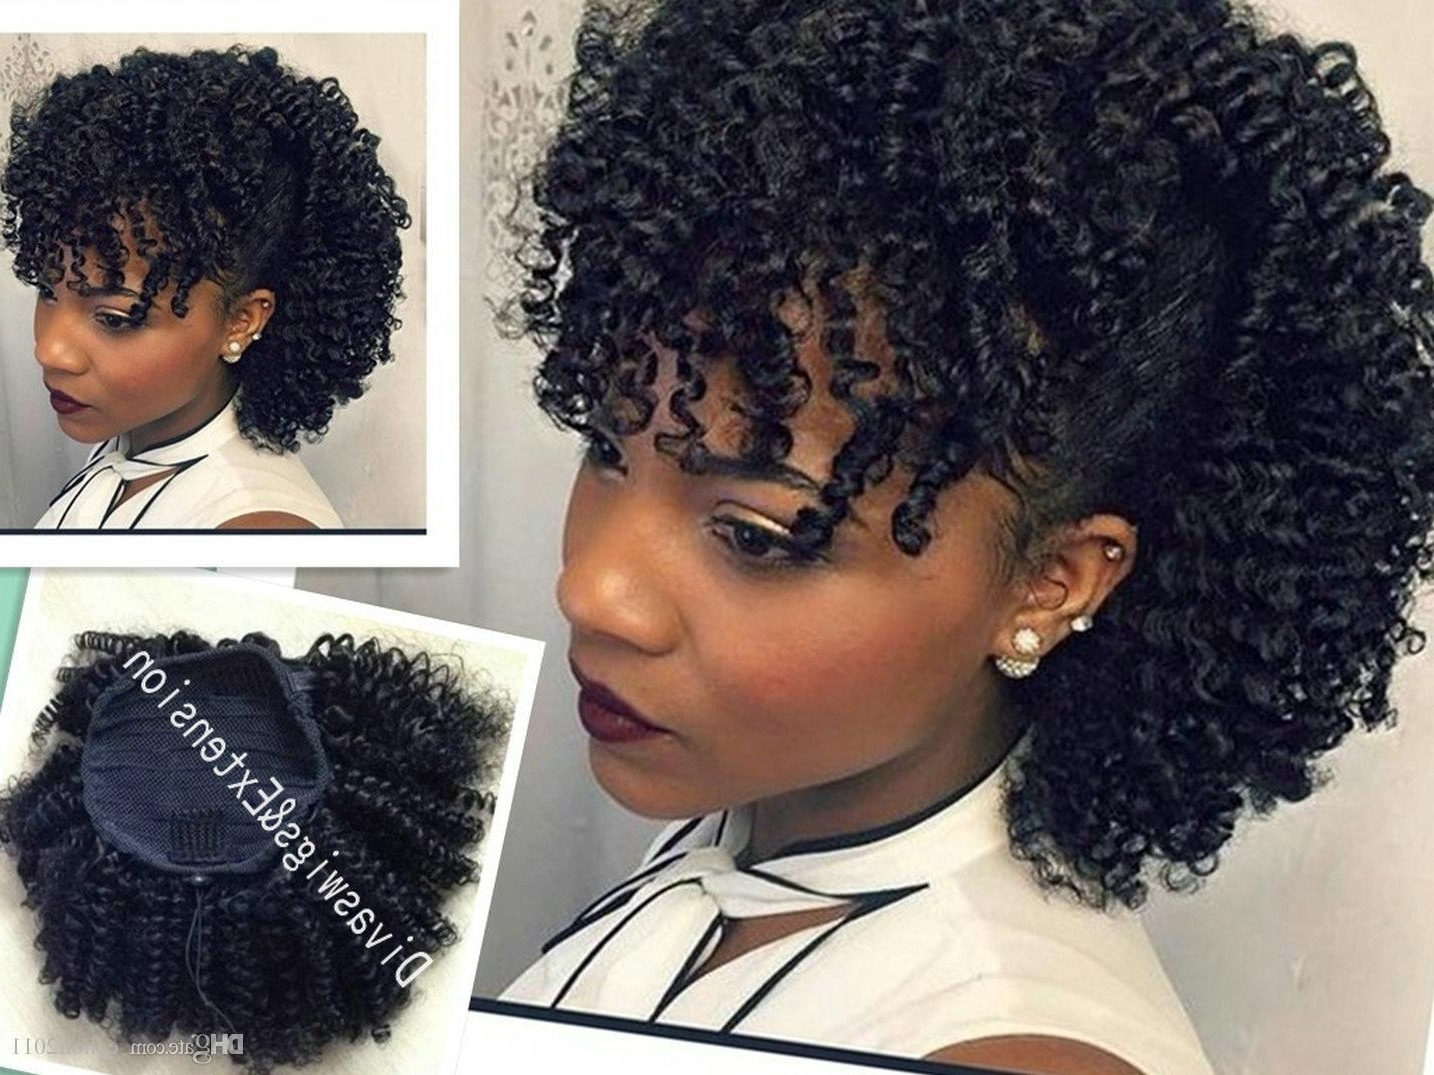 Black Ponytail Hairstyles With Weave Afro Kinky Curly Weave Ponytail With Preferred Natural Curly Pony Hairstyles With Bangs (View 7 of 20)